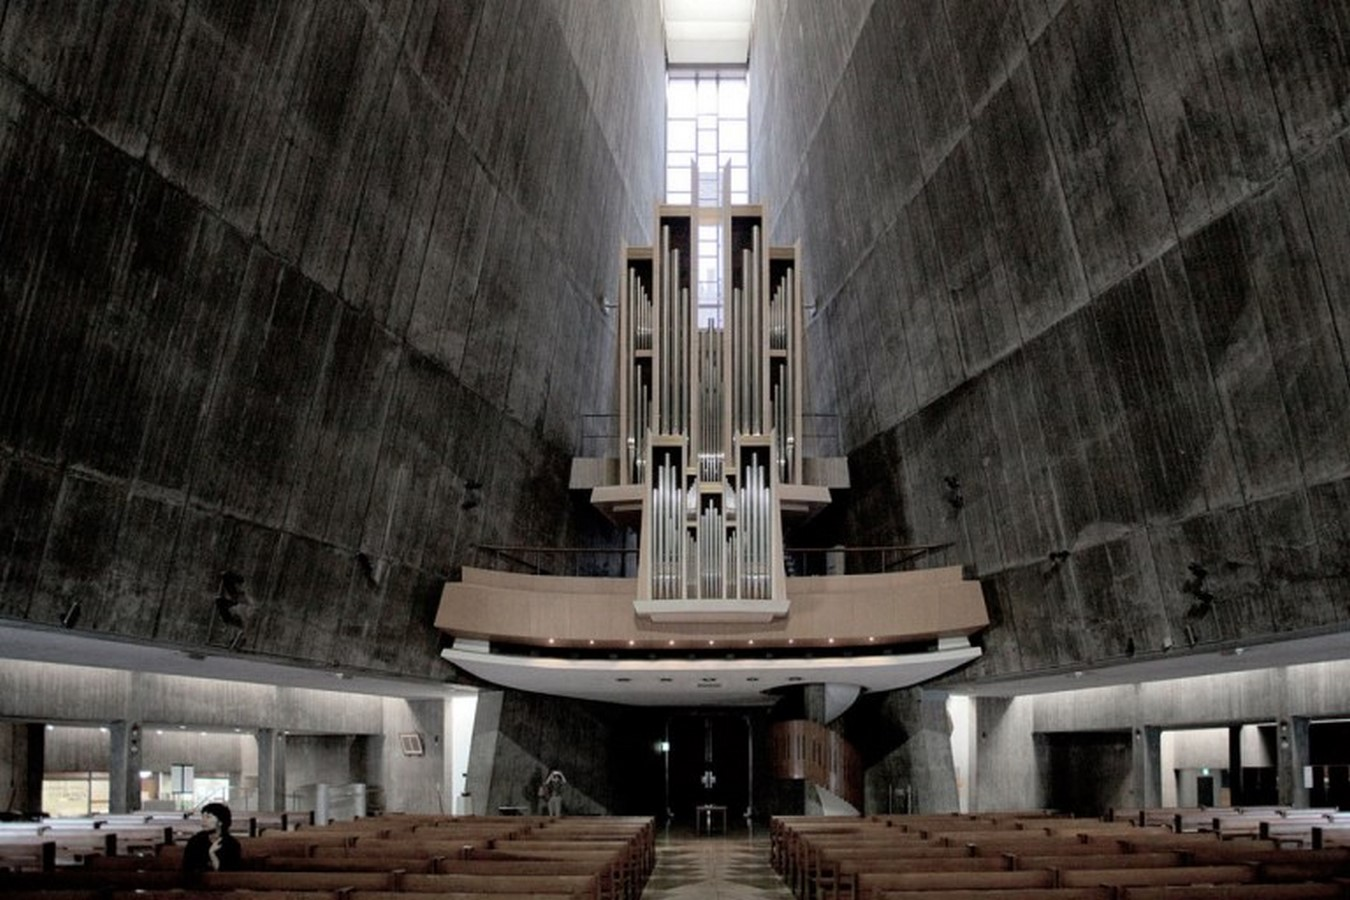 Kenzo Tange's Pritzker winning St. Mary's Cathedral, Tokyo - Sheet4